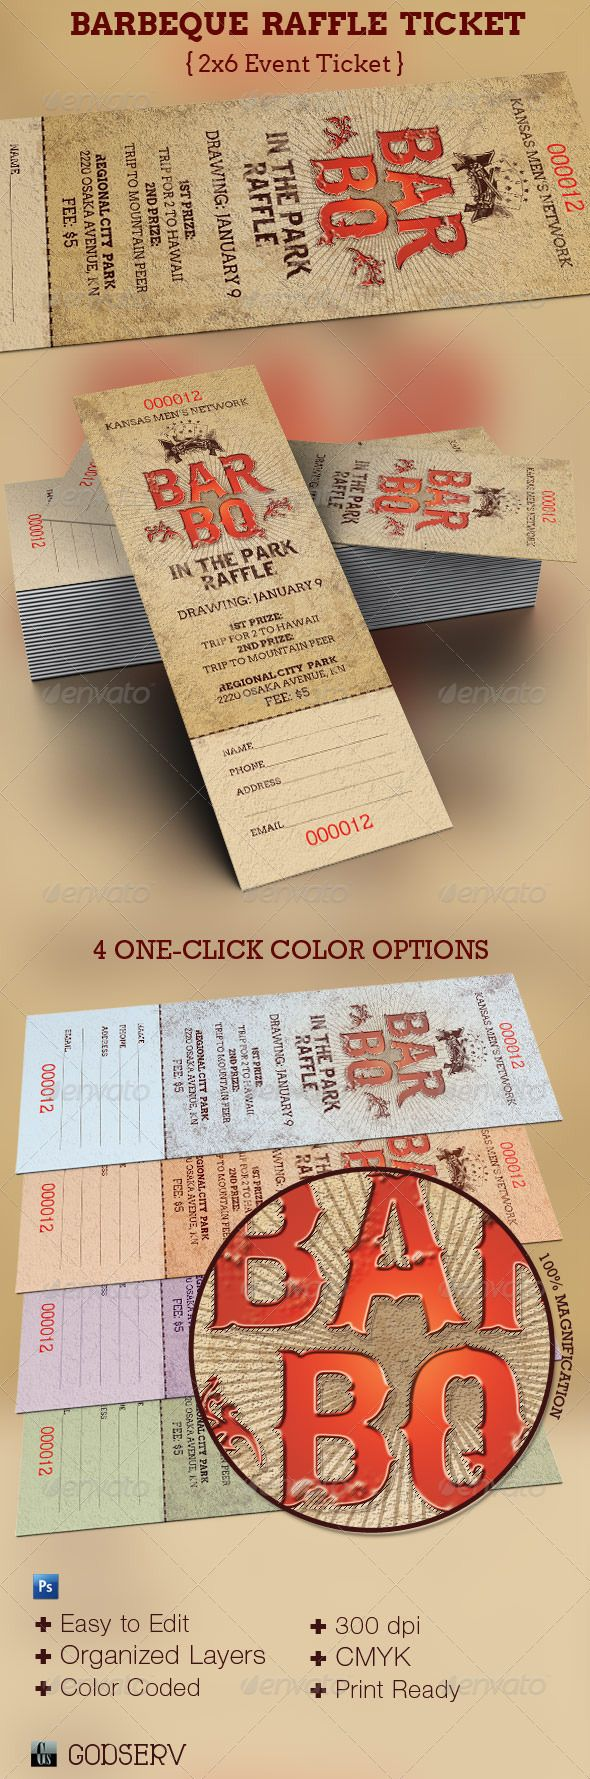 barbeque raffle ticket template miscellaneous print templates